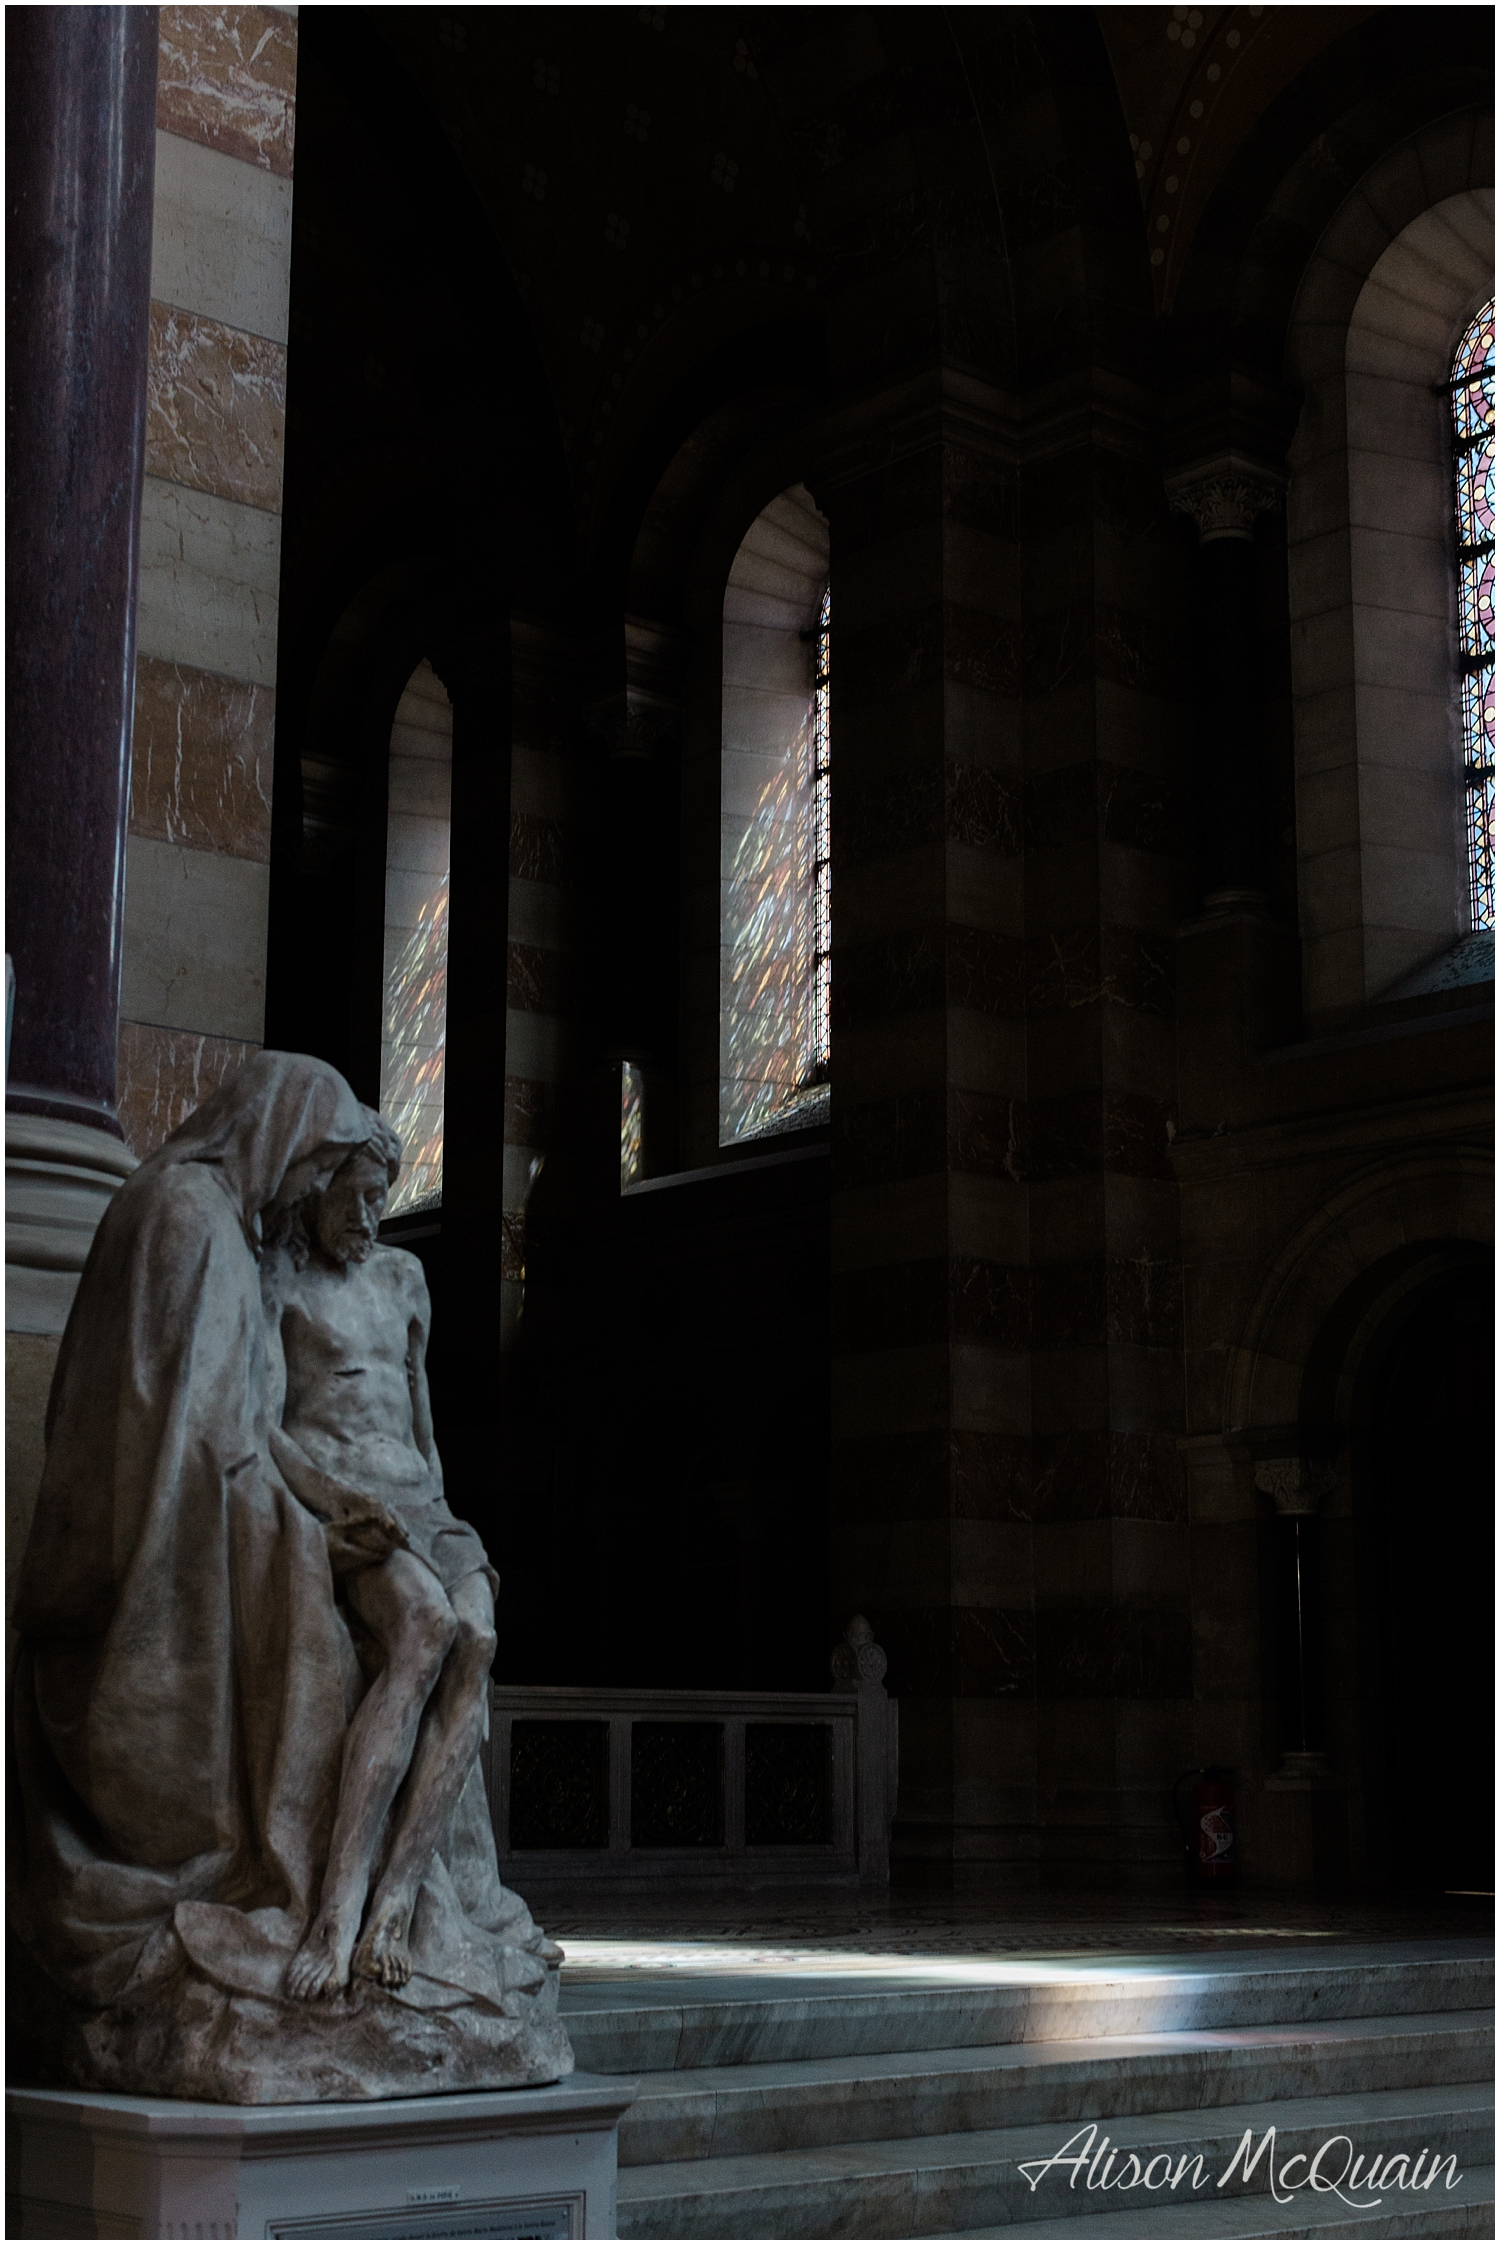 The light in old churches...not to mention the building and art within them...I can't.